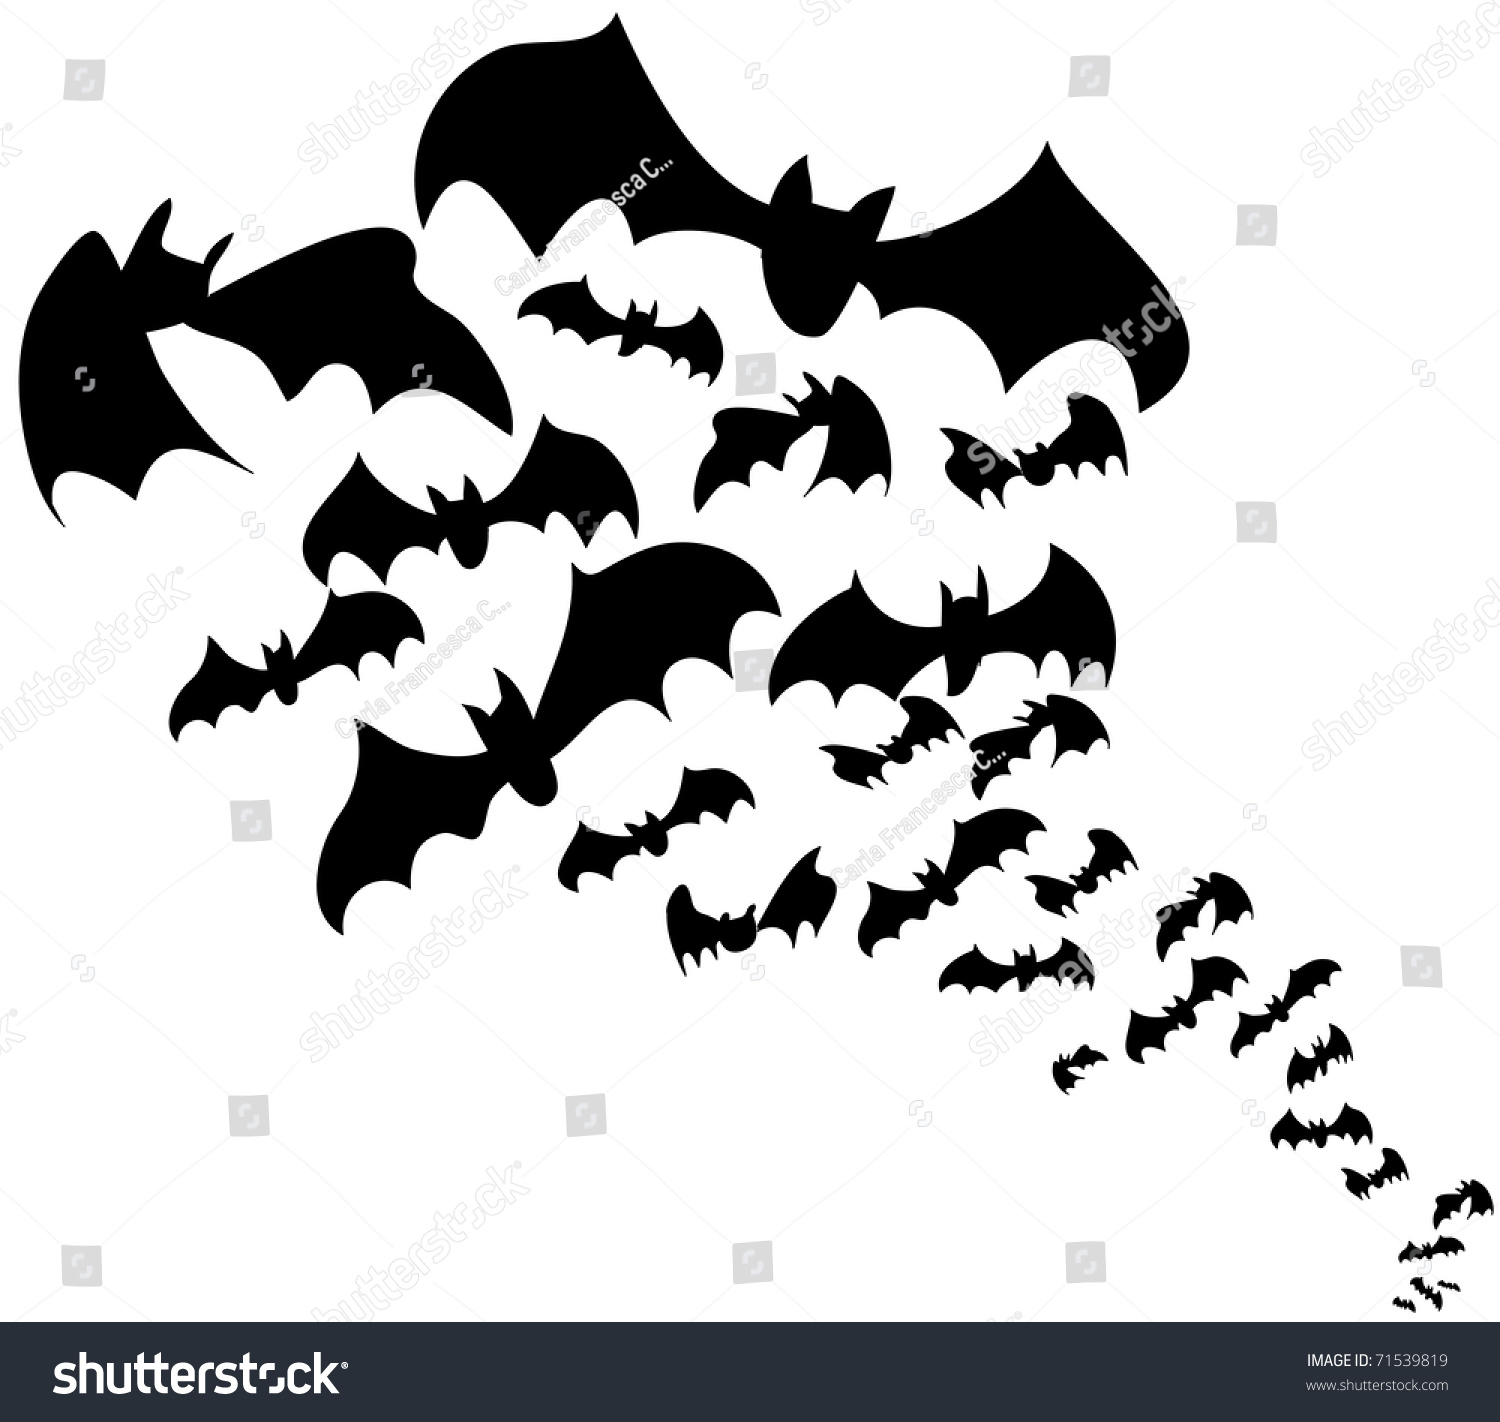 halloween bat decorations bats halloween decoration download - Halloween Bat Decorations